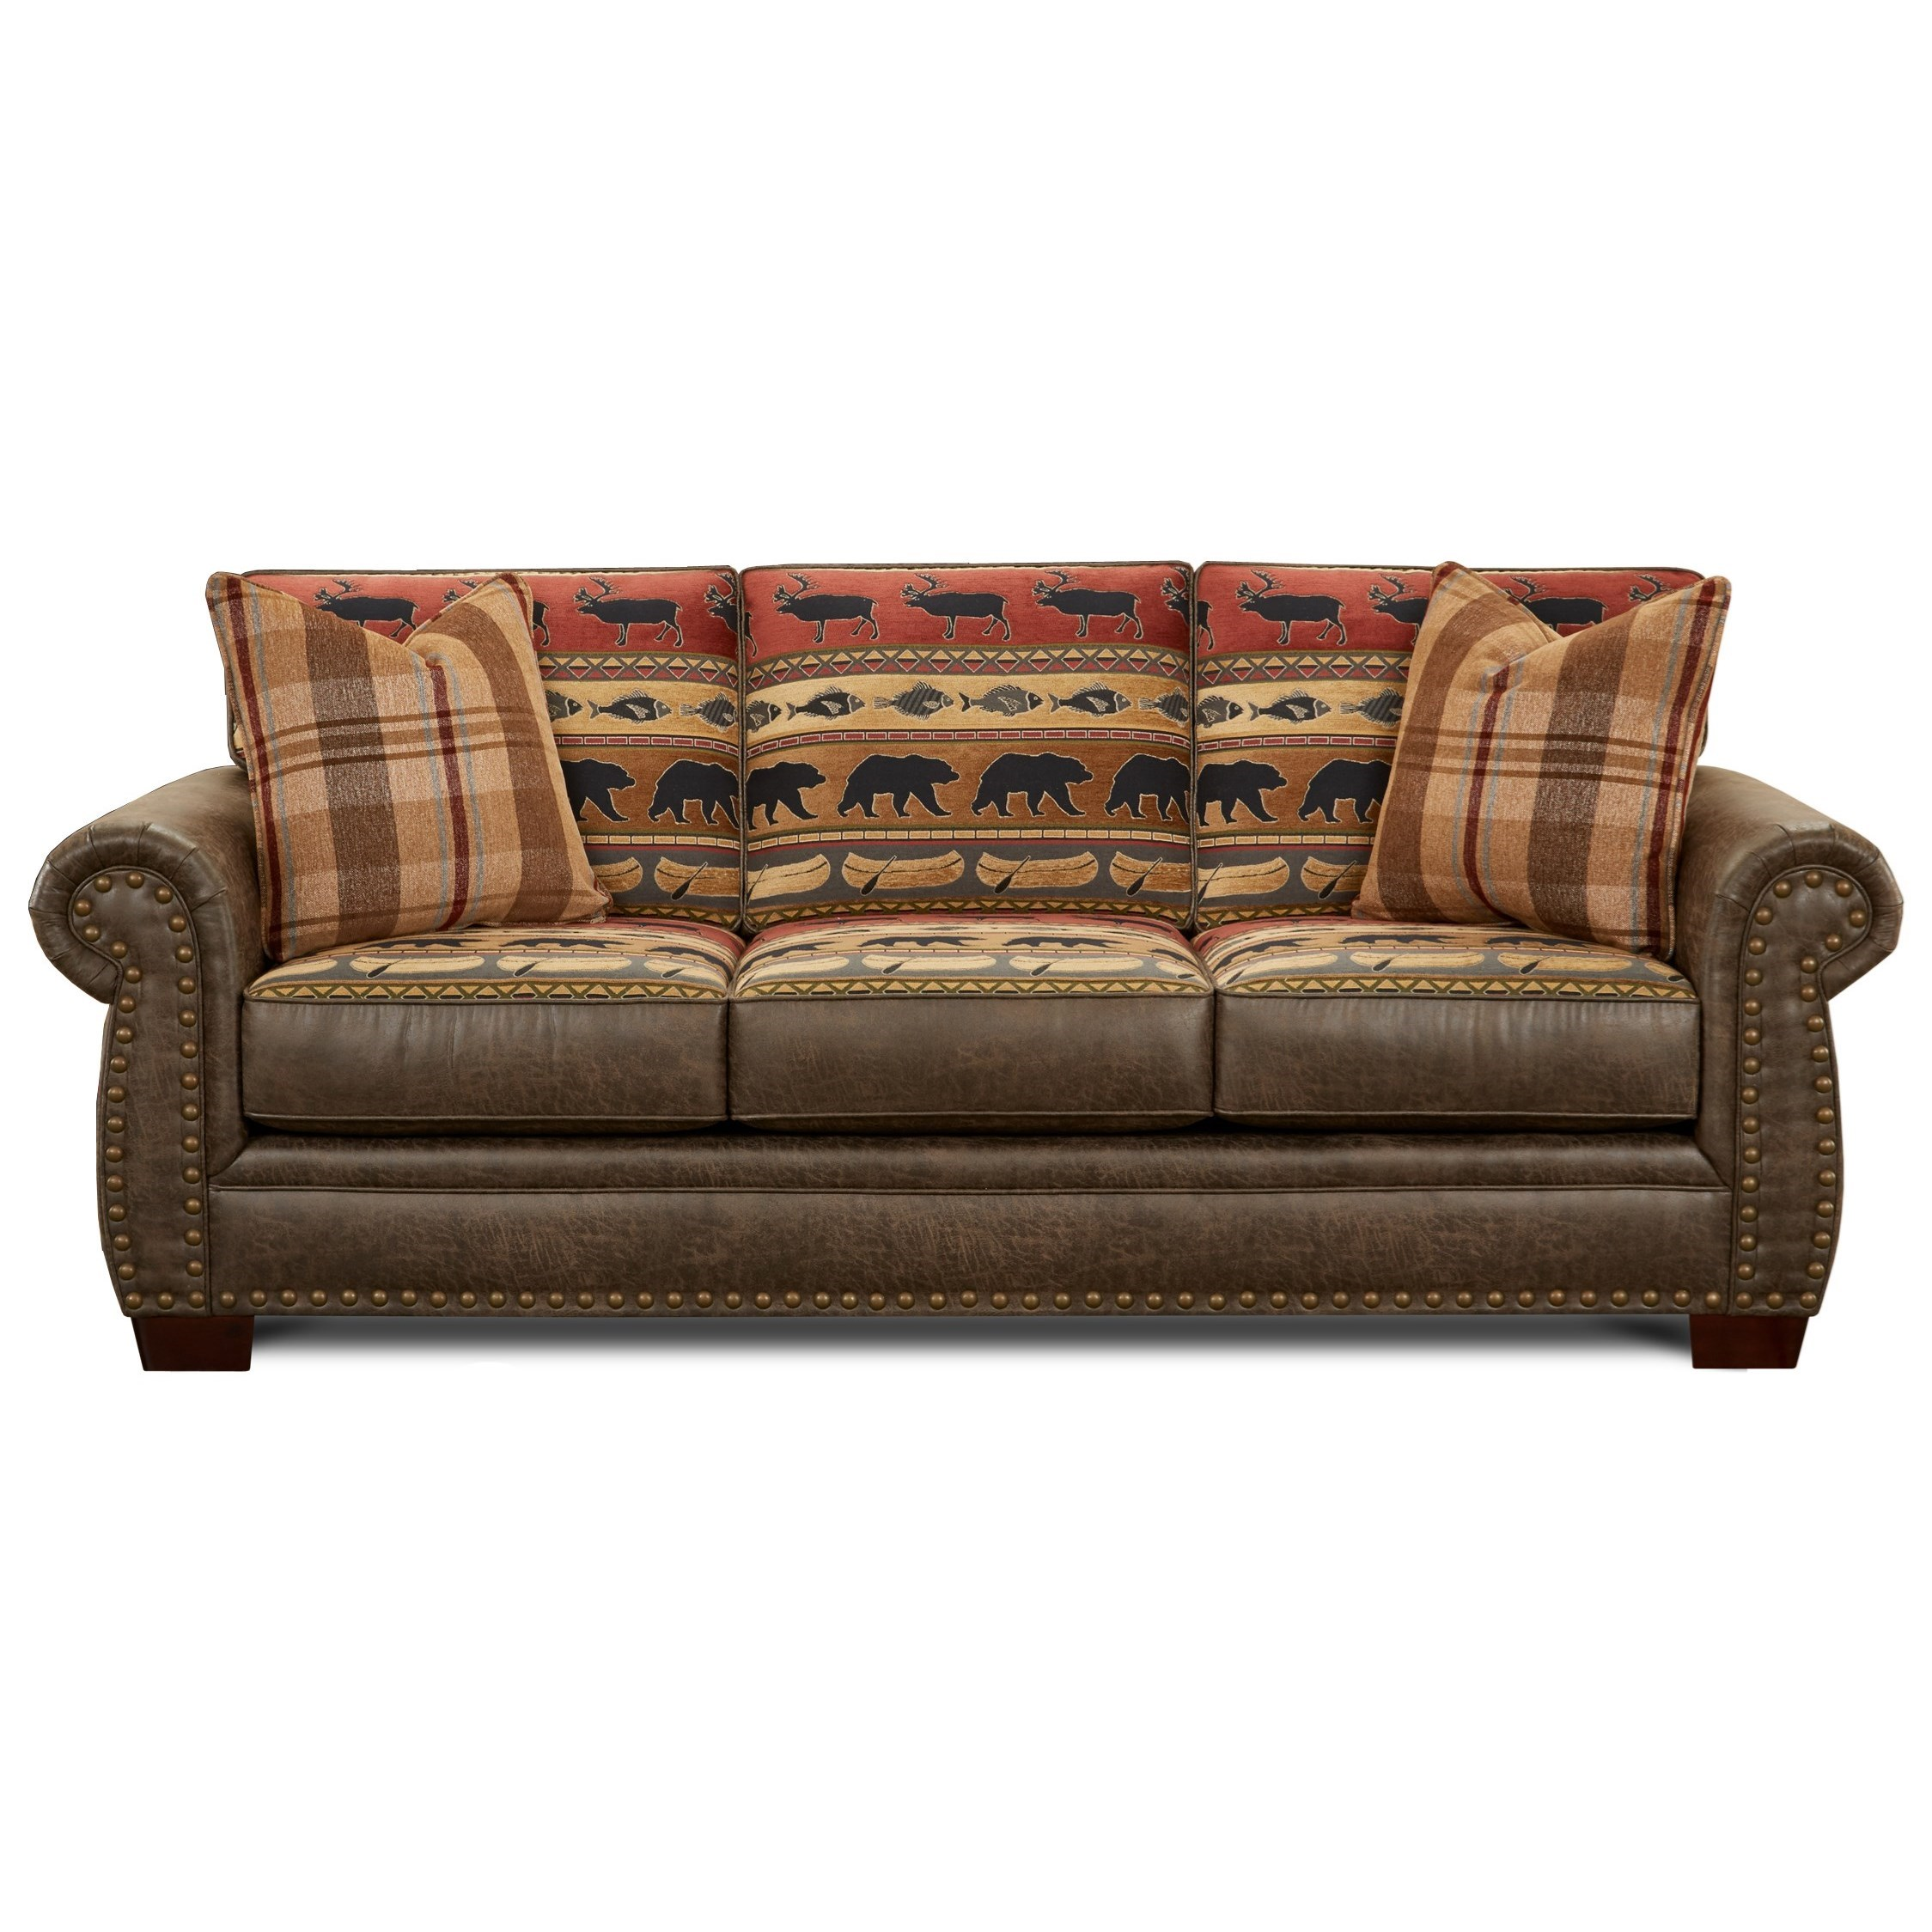 Fusion Furniture 22 00 Fabric Faux Leather Sofa With Wildlife Motif Howell Furniture Sofas